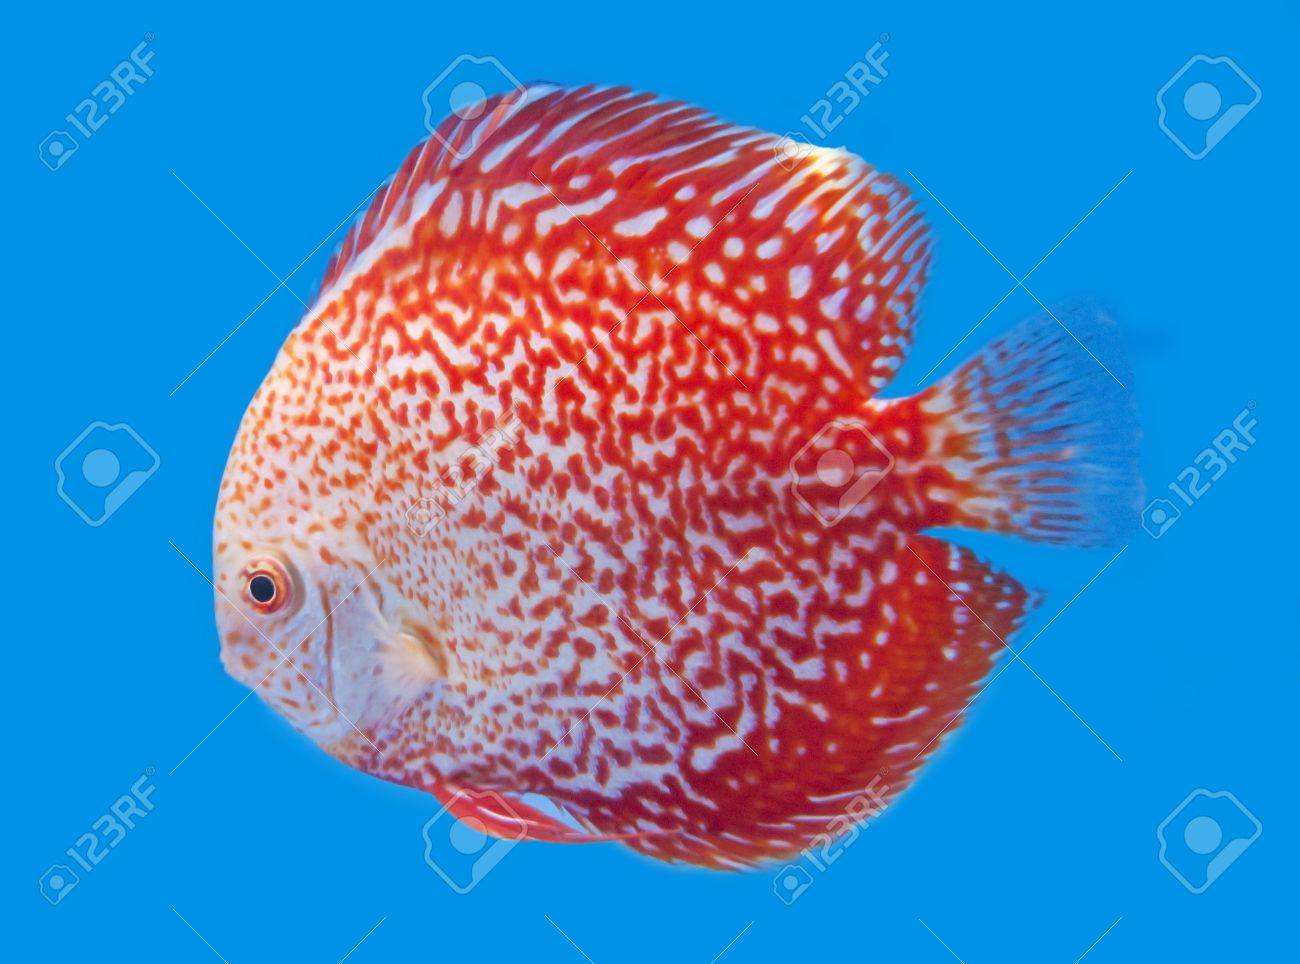 Freshwater fish amazon - Spotted Orange Discus Freshwater Fish Native To The Amazon River In Blue Background Stock